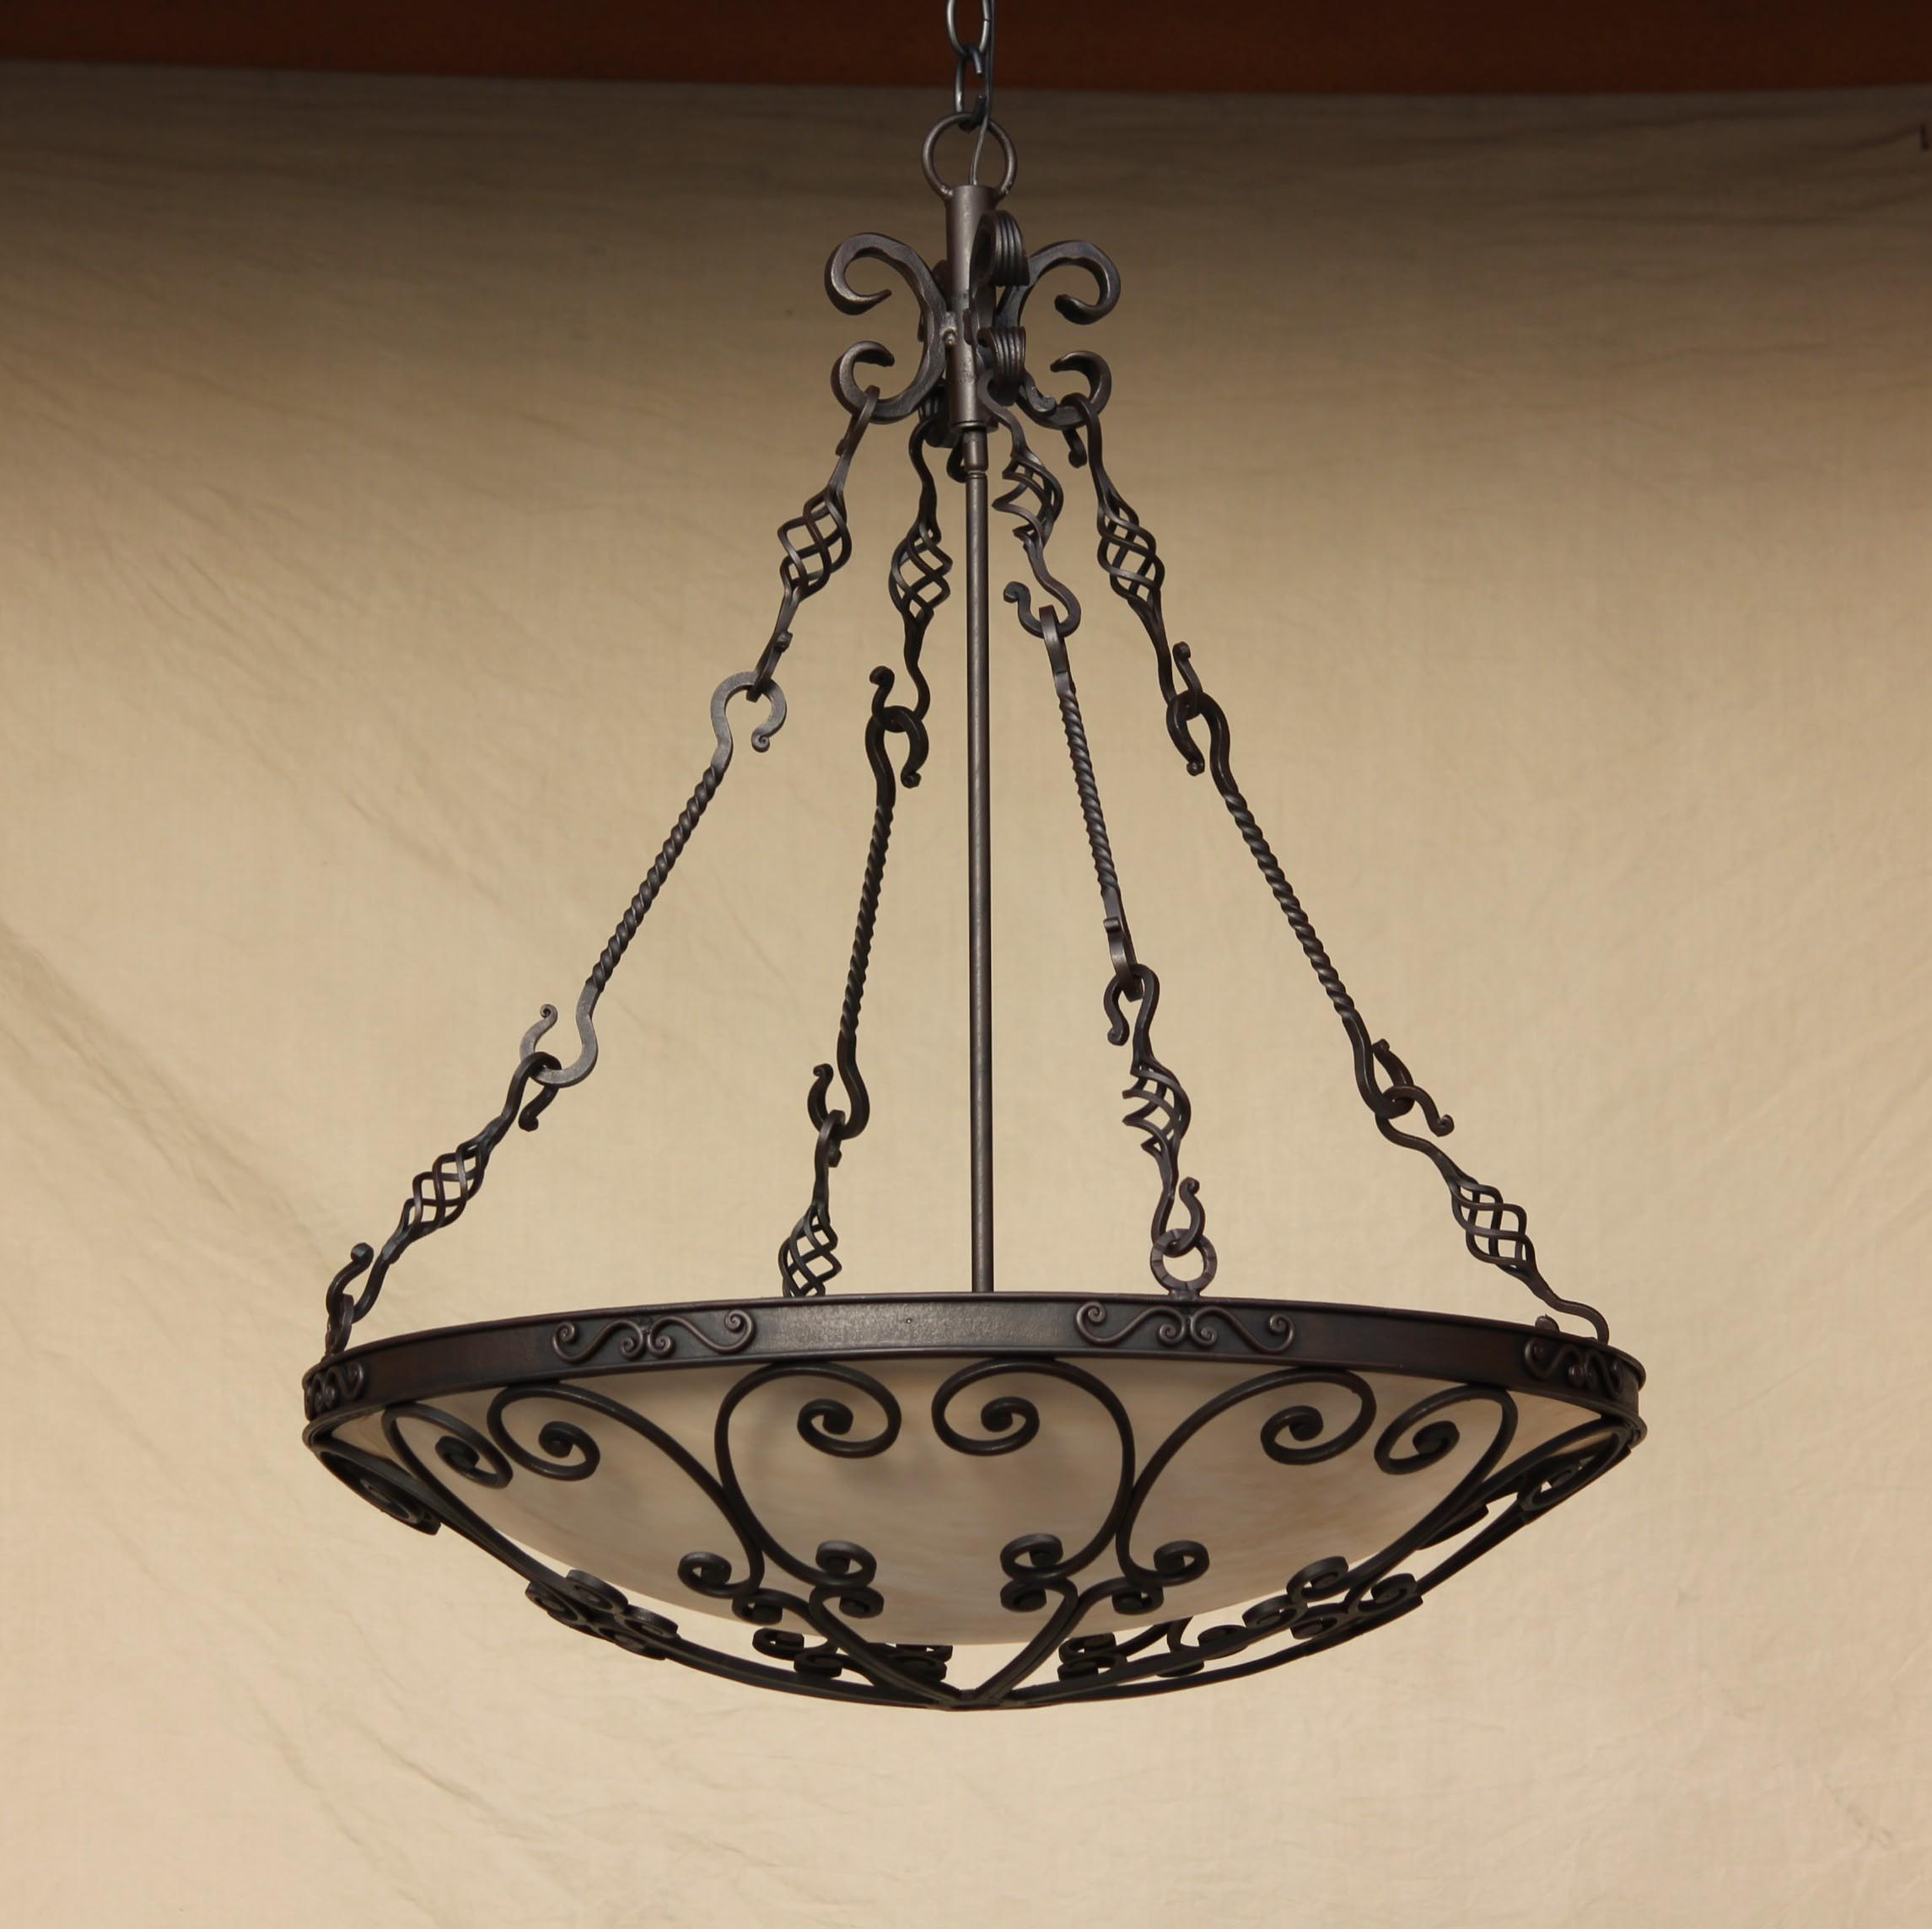 Forged Iron Lighting Fixtures